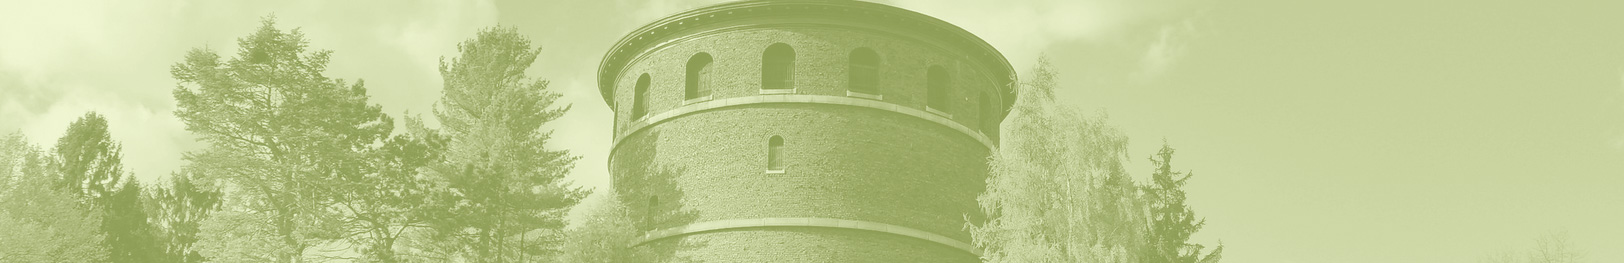 water-tower-header